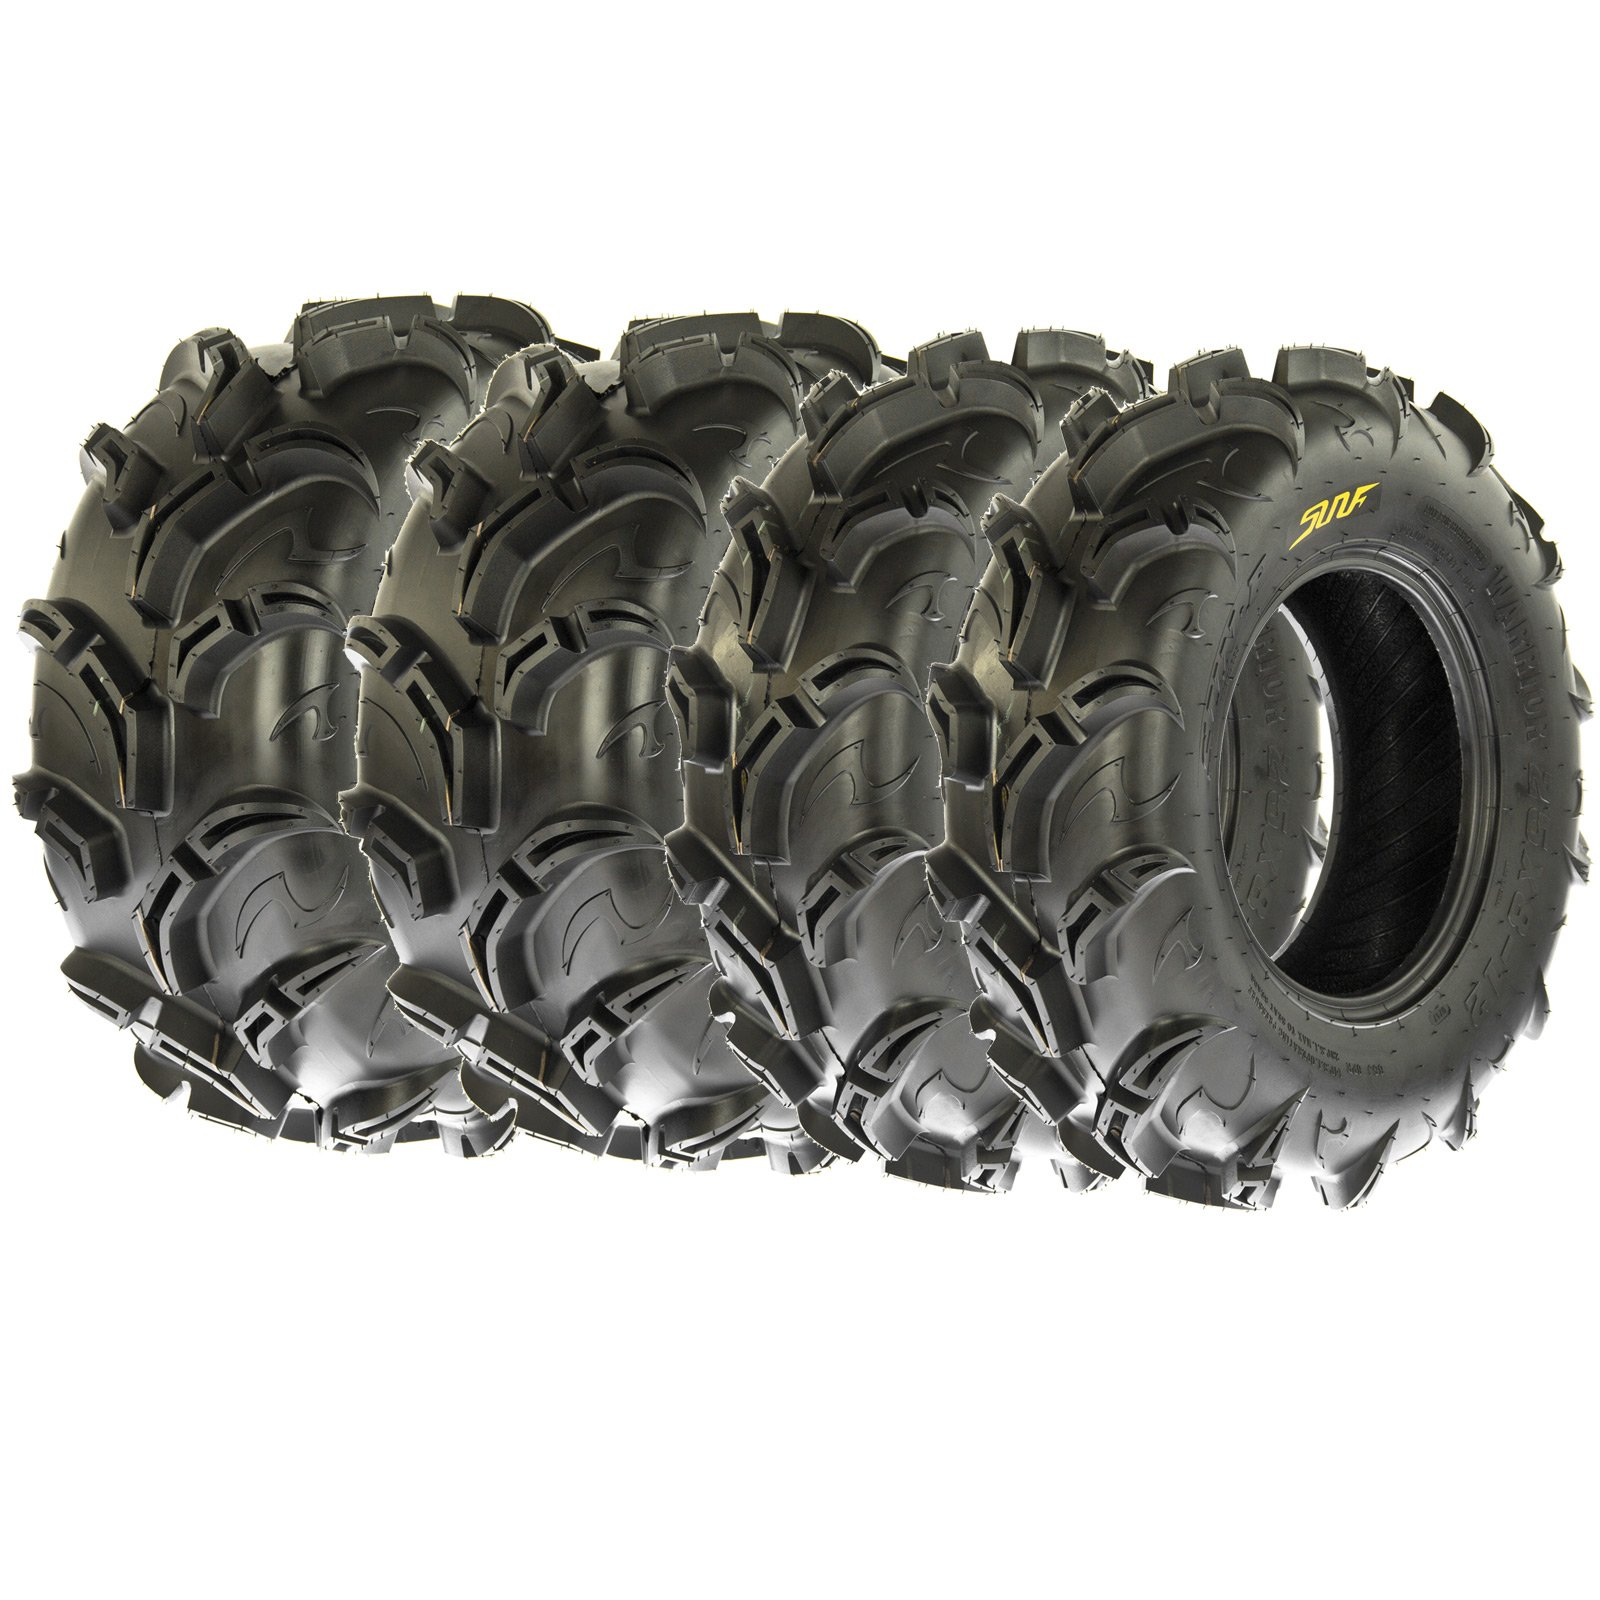 SunF Warrior AT-Mud & Trail ATV/UTV Off-Road Tires (26x9-12 Front & 26x11-12 Rear) , 6 PR (Full Set of 4)|A048